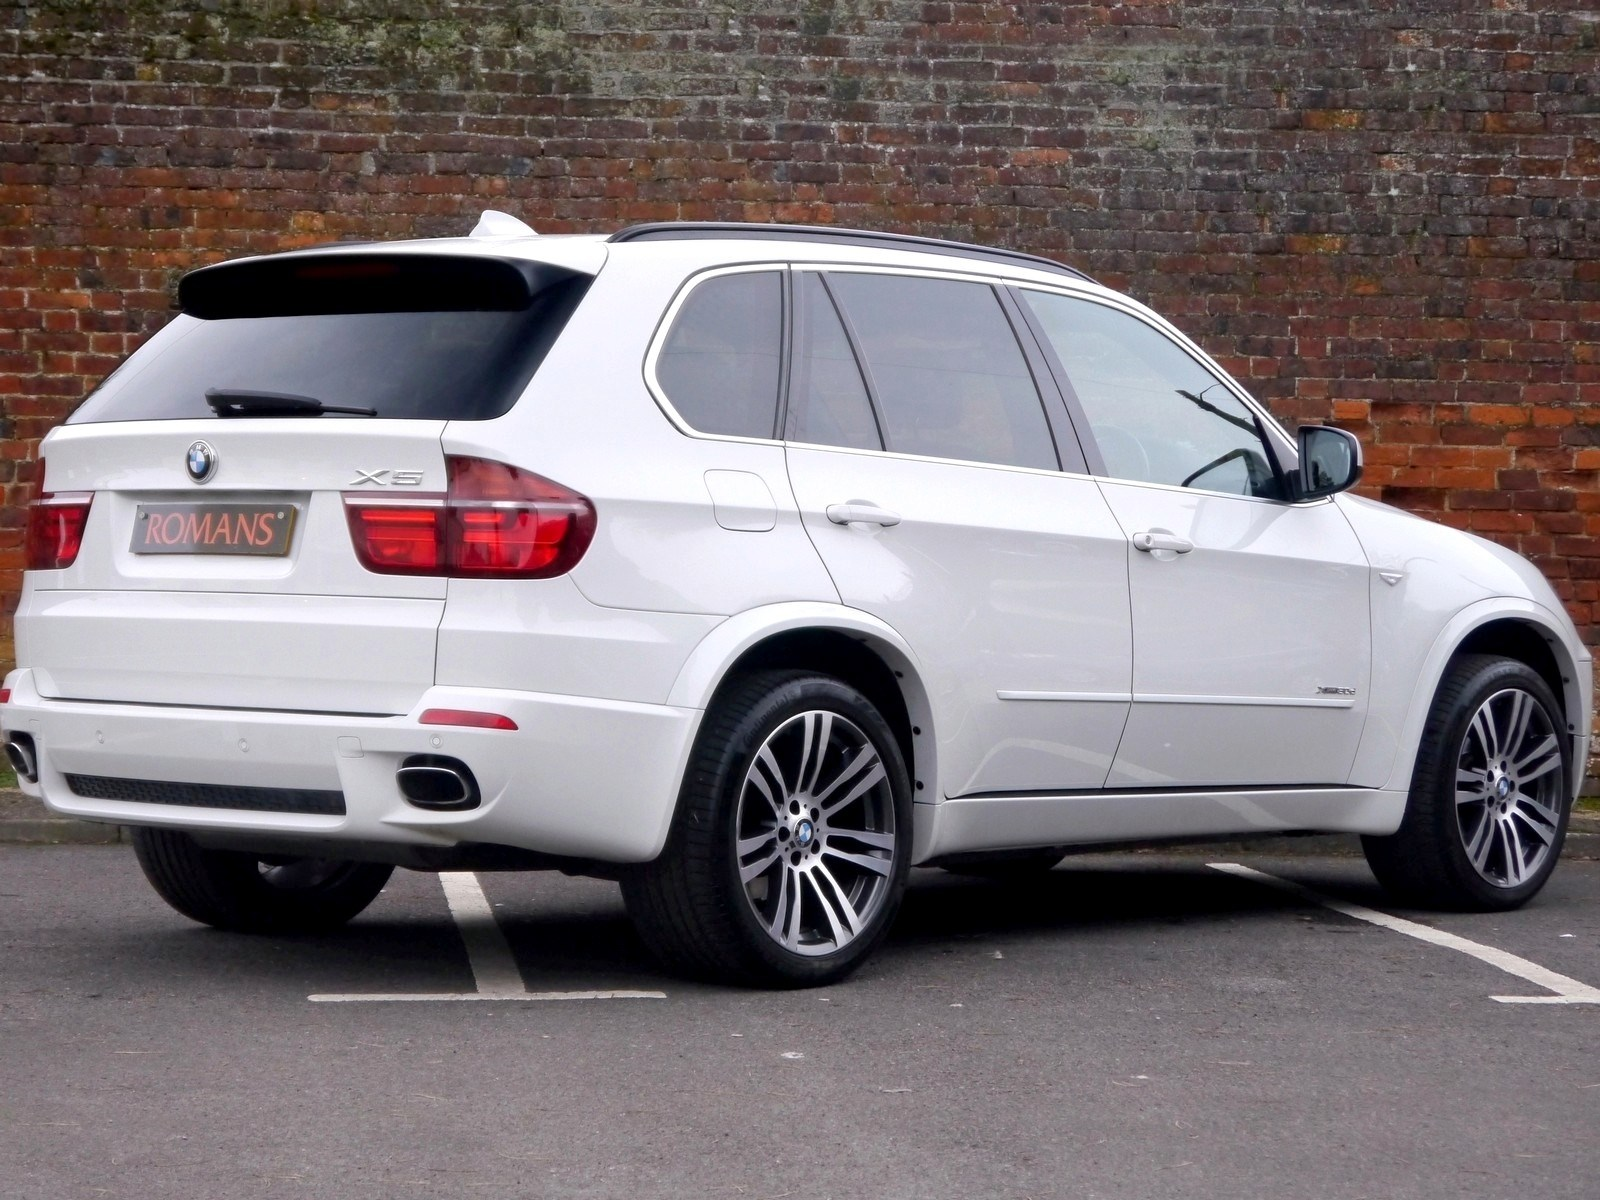 Best Mileage Suv >> BMW X5 xDrive30d M Sport Automatic - 7 Seats - 20'' alloy ...